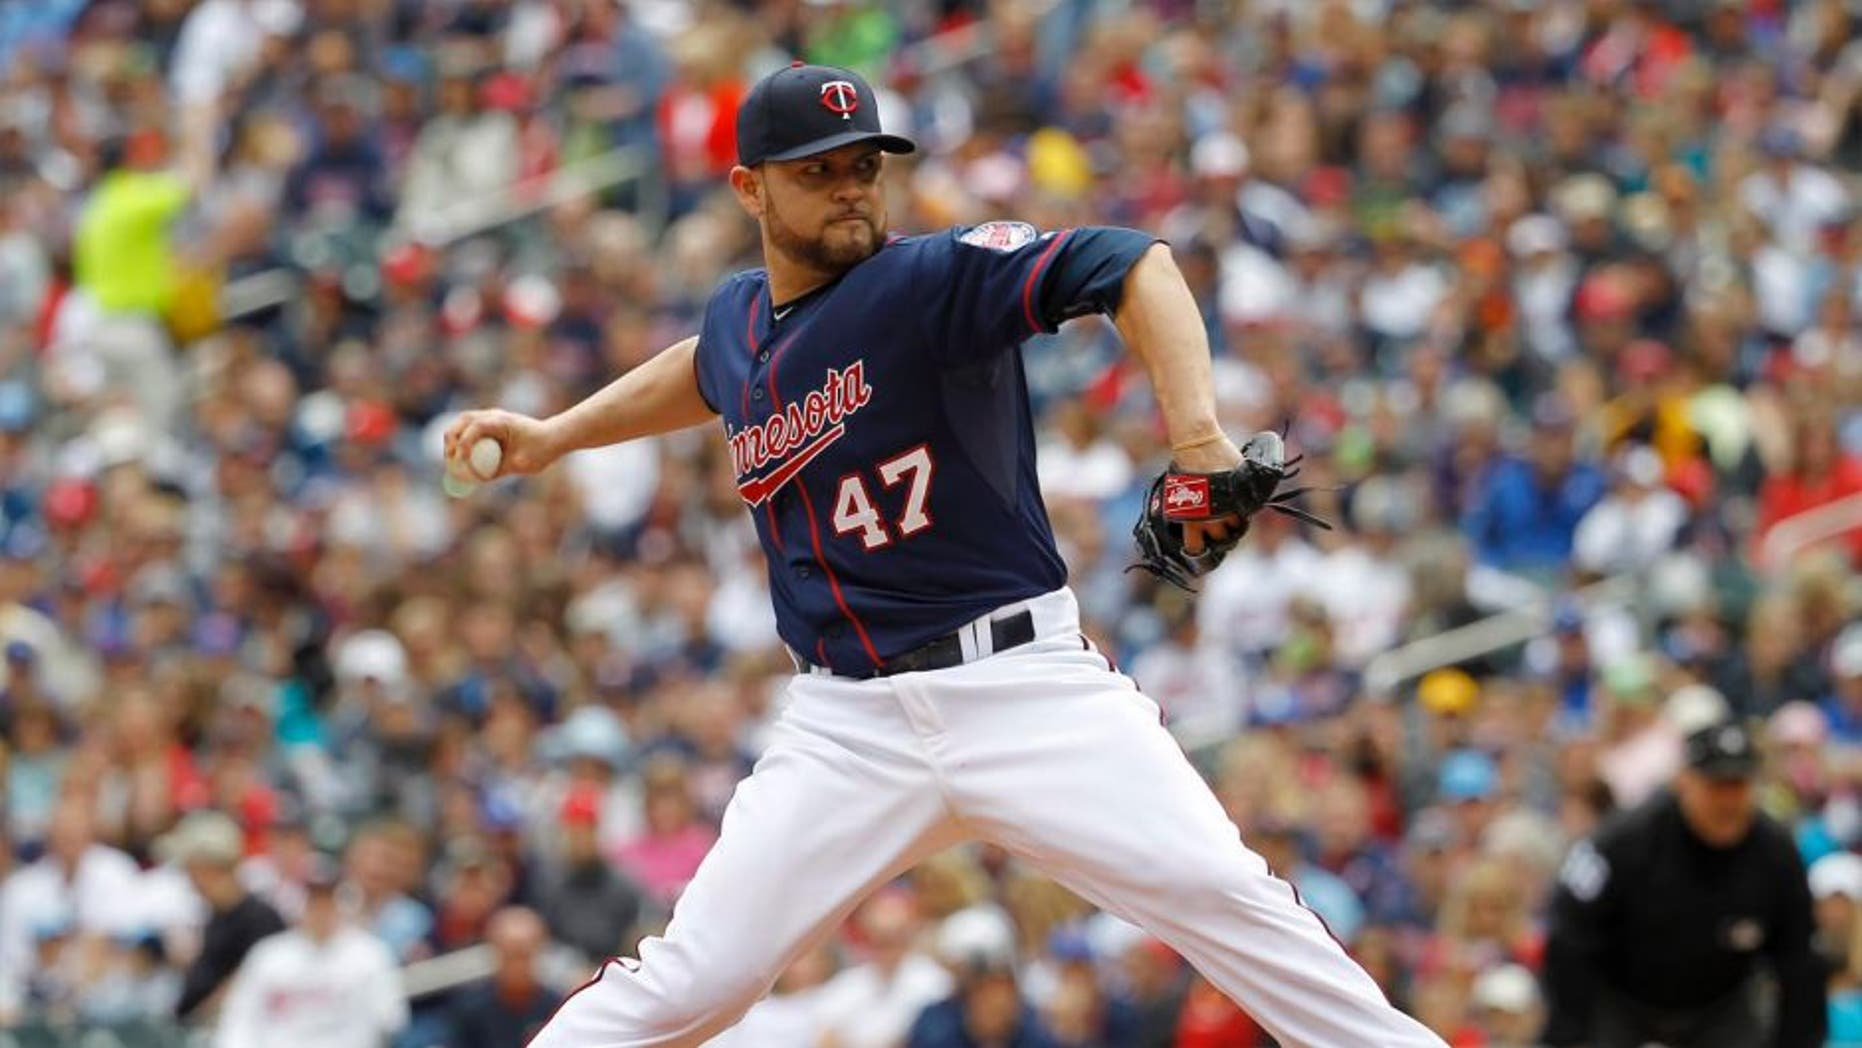 Minnesota Twins starting pitcher Ricky Nolasco delivers to the Toronto Blue Jays during the first inning in Minneapolis, Sunday, May 31, 2015.